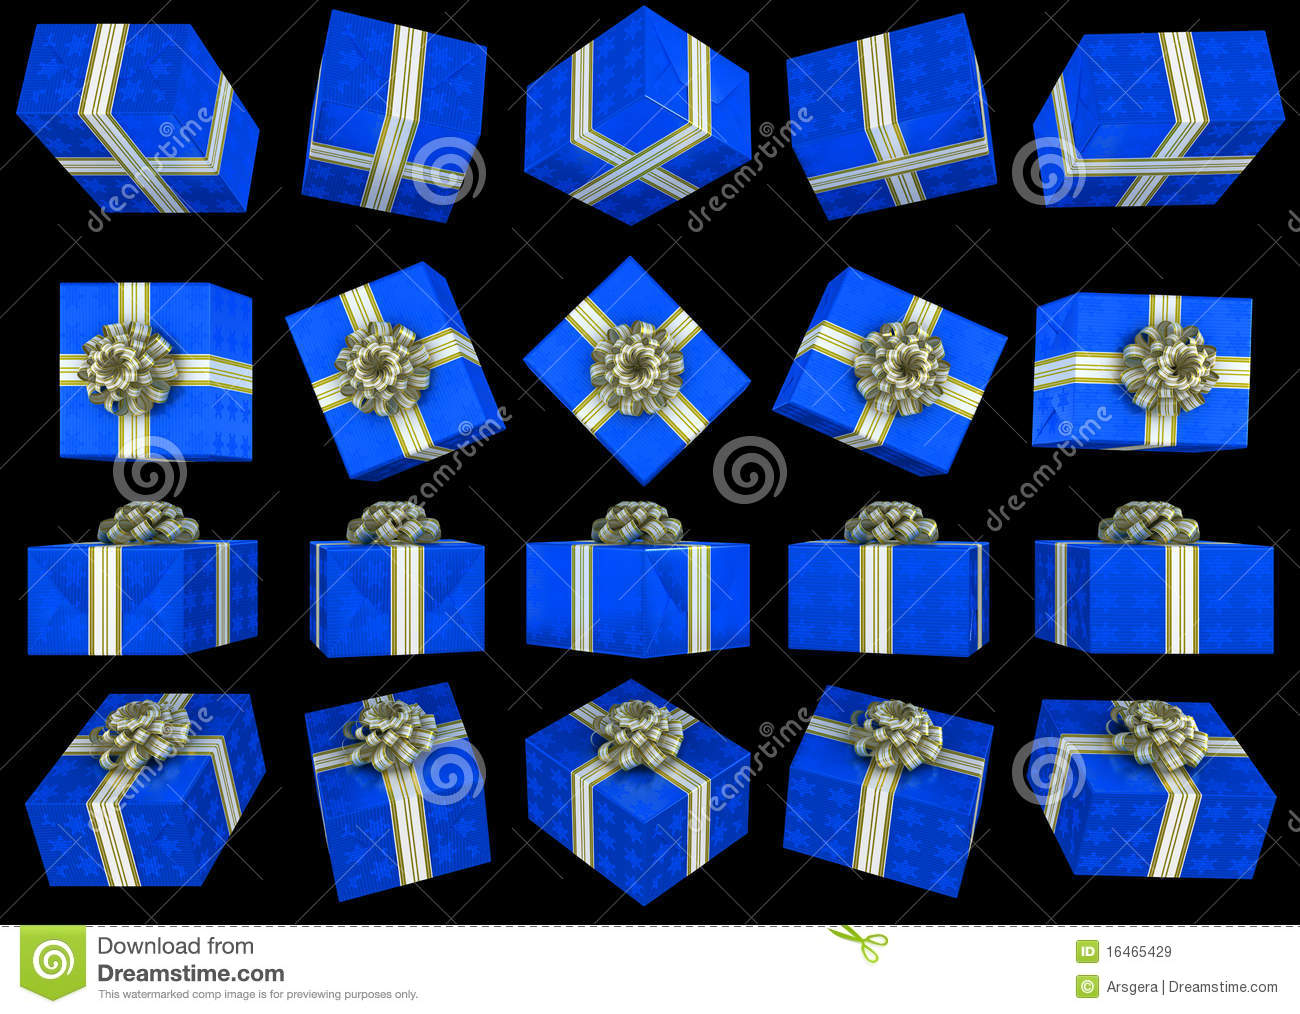 Different Views Of Blue Gift Box Royalty Free Stock Images ...